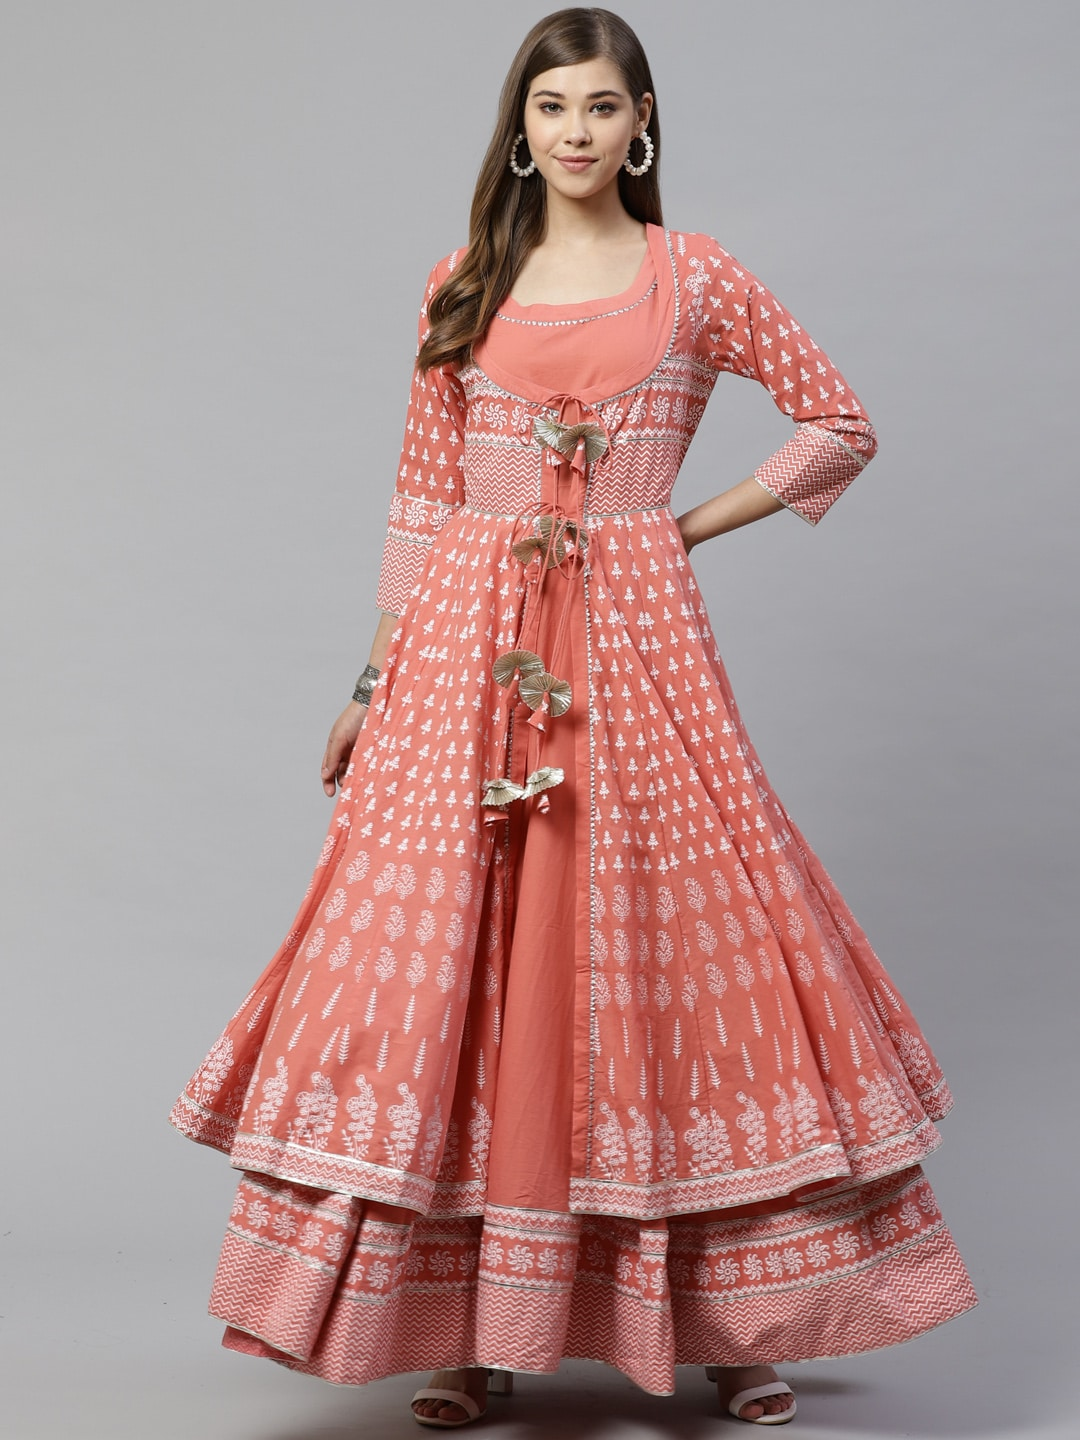 Divena Women Peach-Coloured Gotta Patti Printed Cotton Anarkali With Long Ethnic Jacket